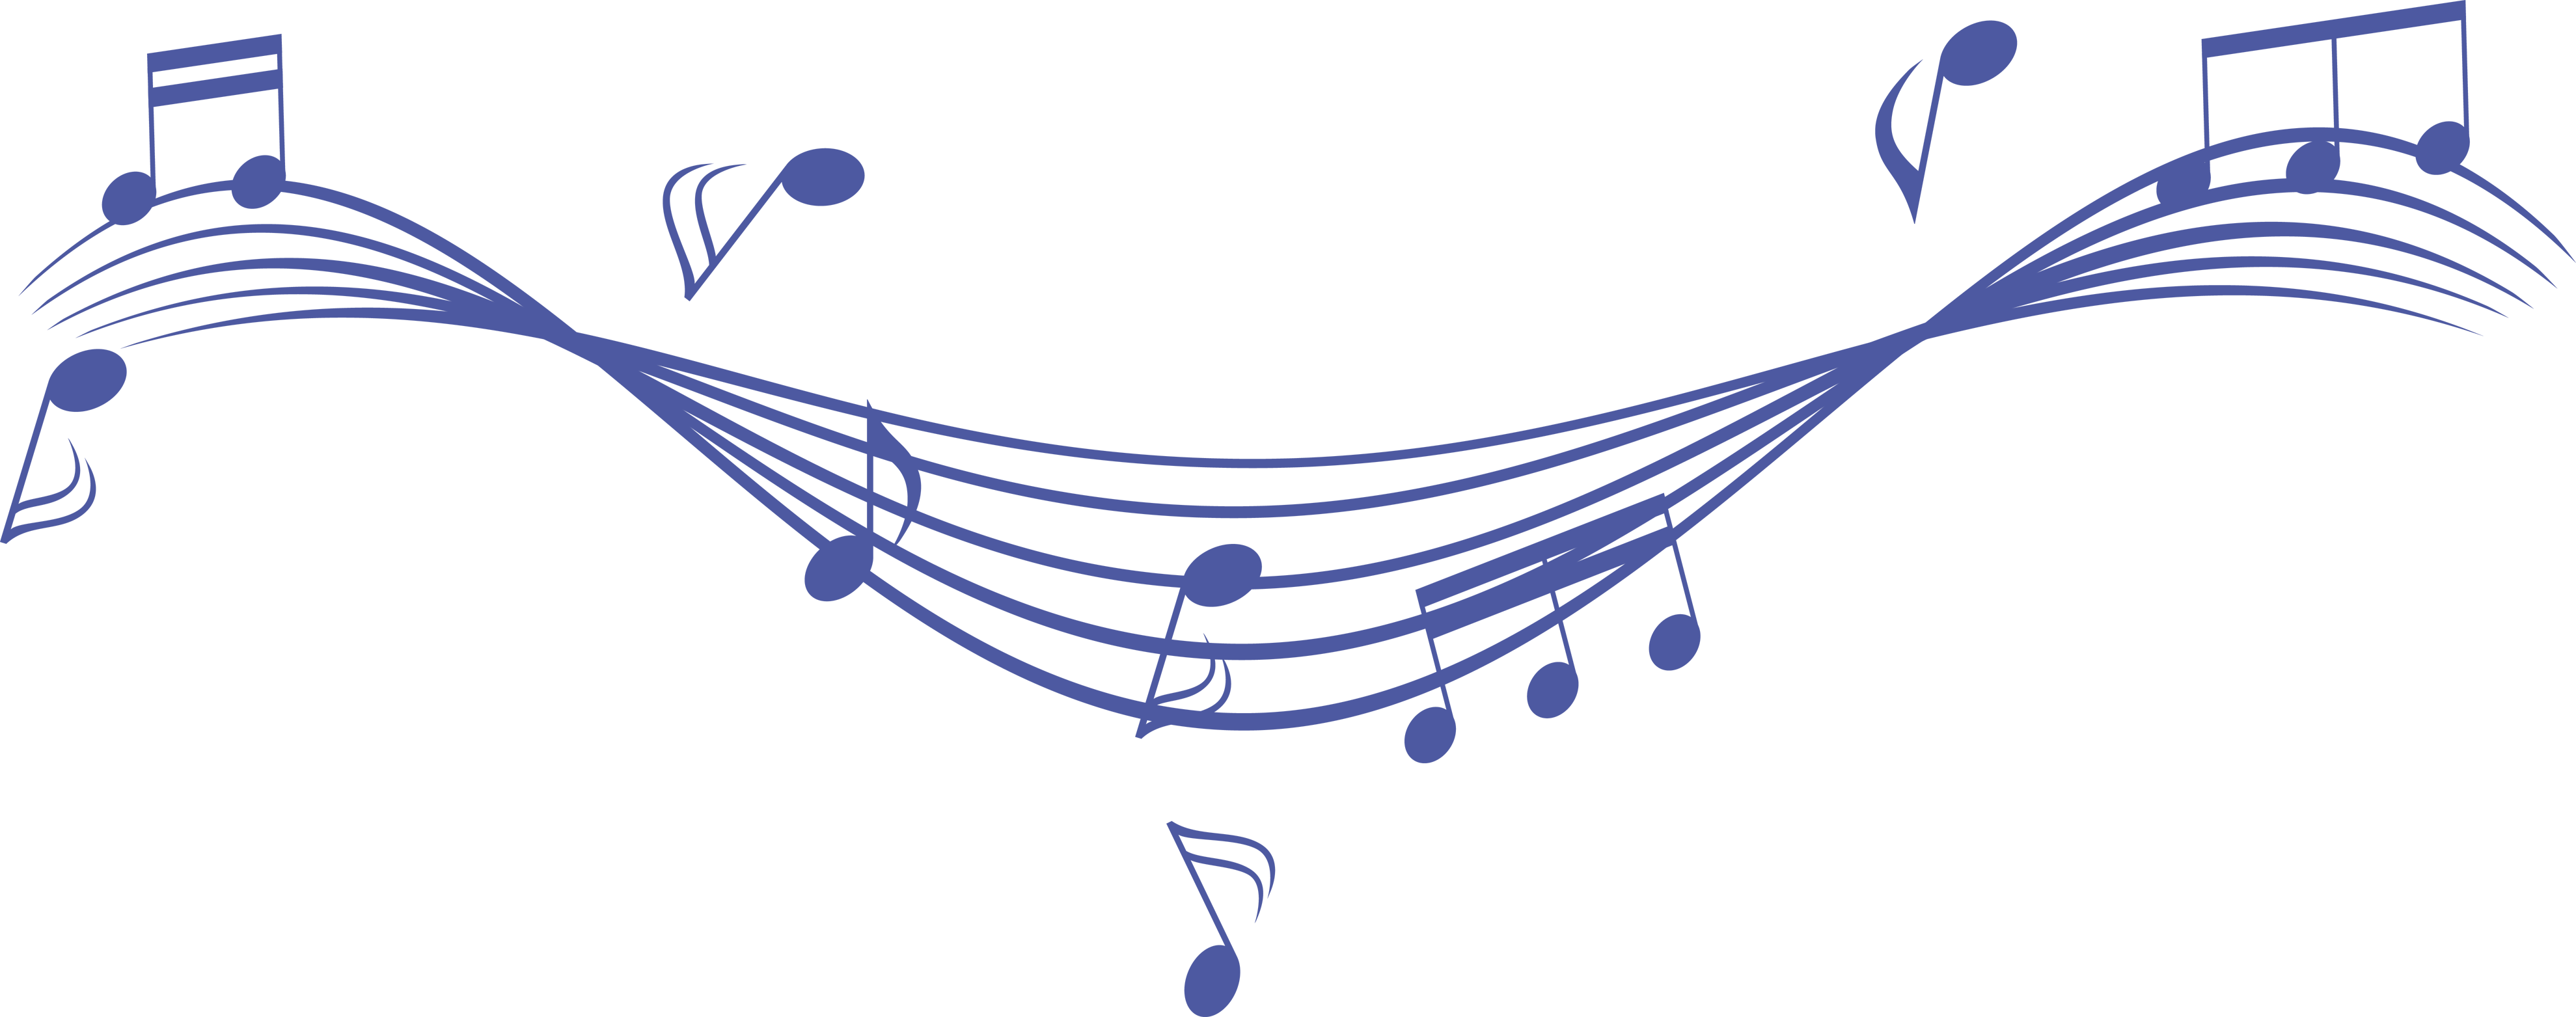 Blue Music Note Image